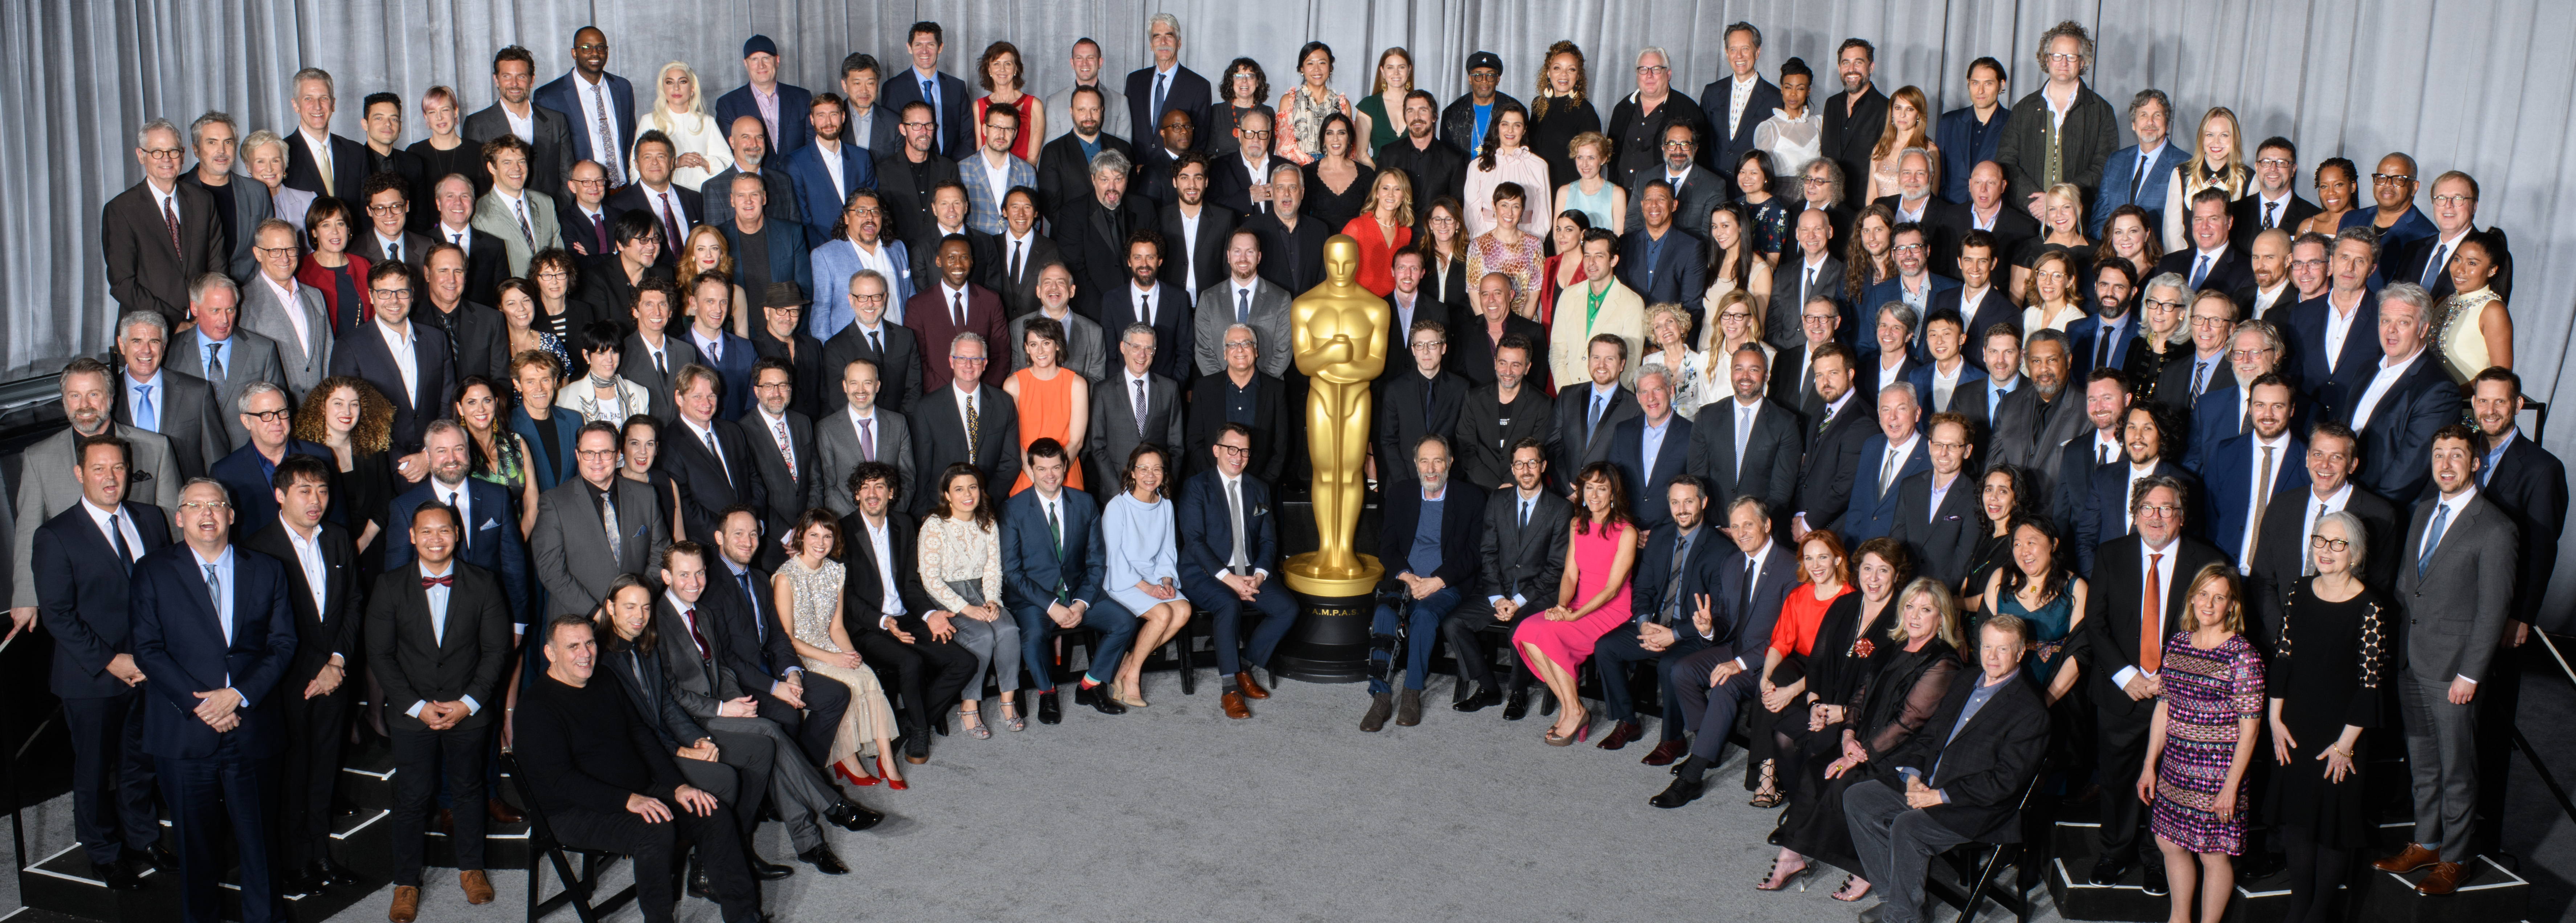 Nominees for the 91st Oscars® were celebrated at a luncheon held at the Beverly Hilton, Monday, February 4, 2019. The 91st Oscars will air on Sunday, February 24, live on ABC.